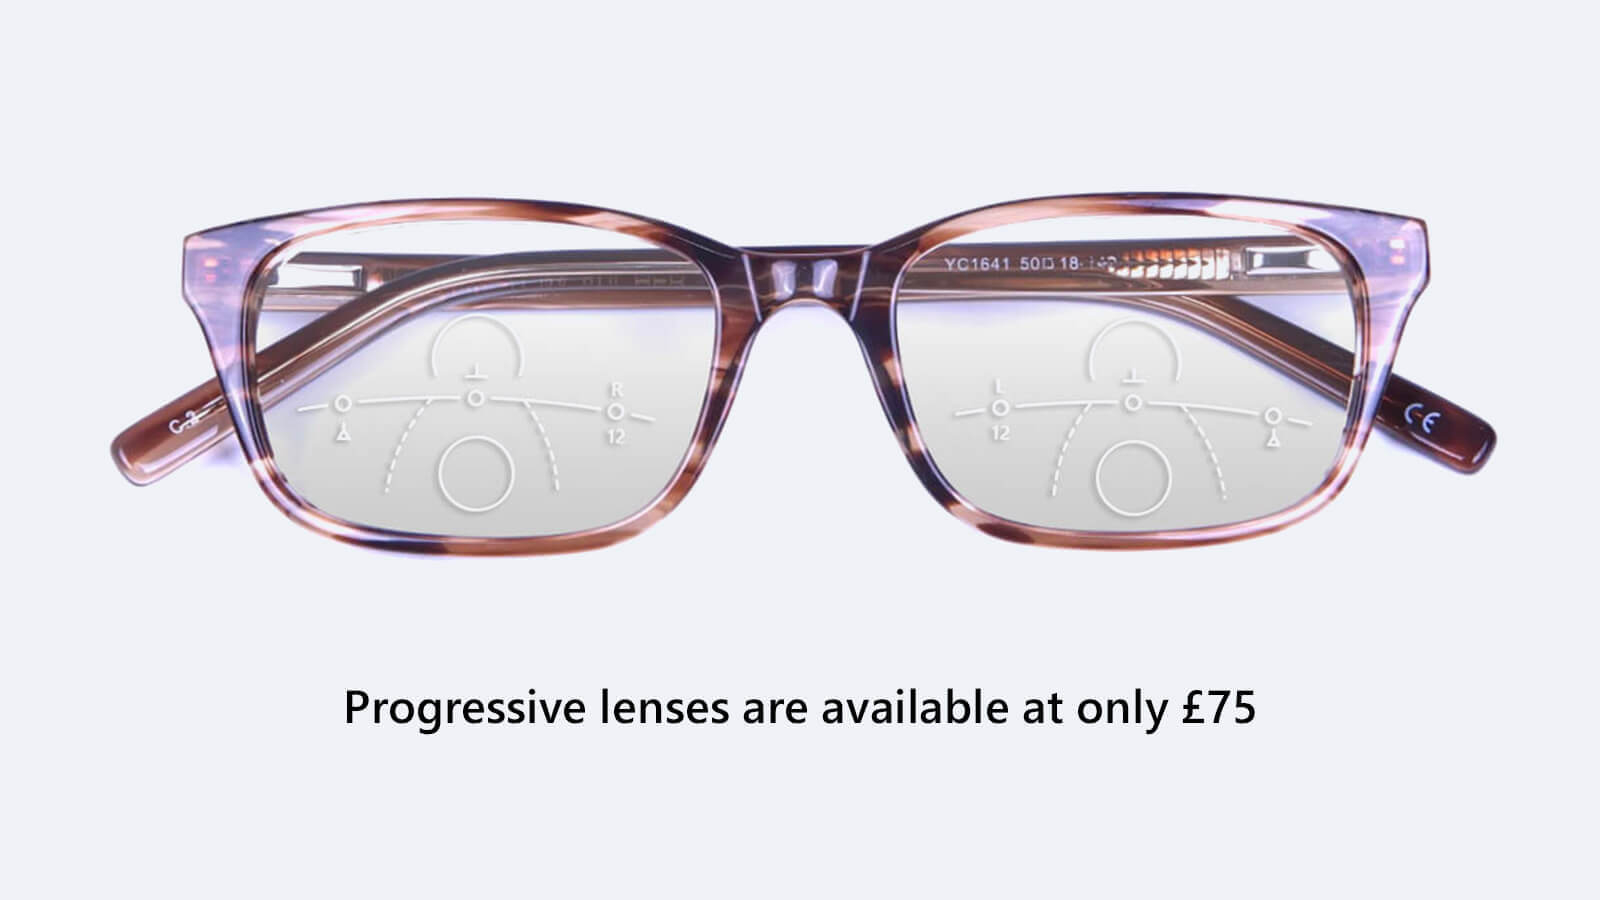 Varifocal glasses at competitive prices